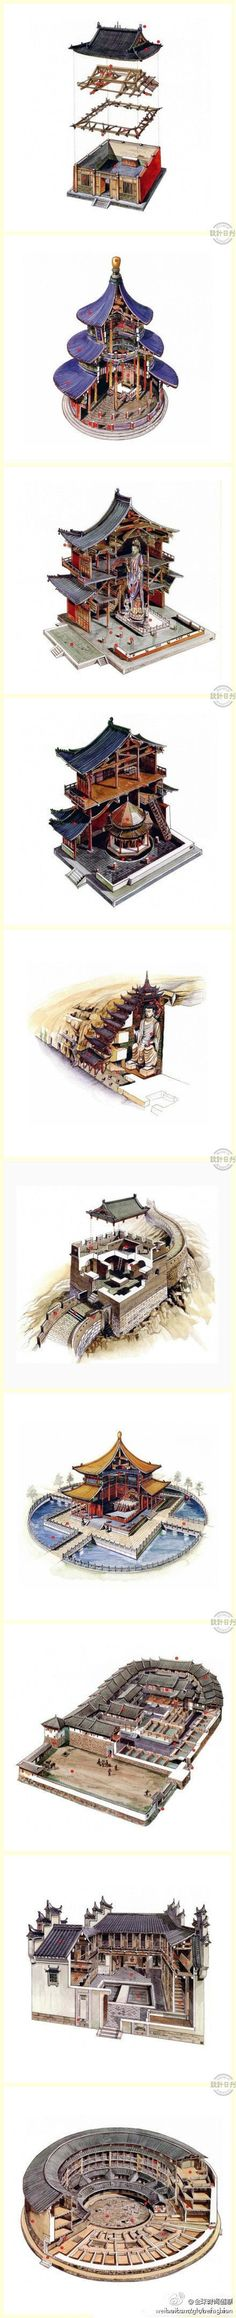 See the Unique Anatomy of These 10 Classical Chinese Buildings